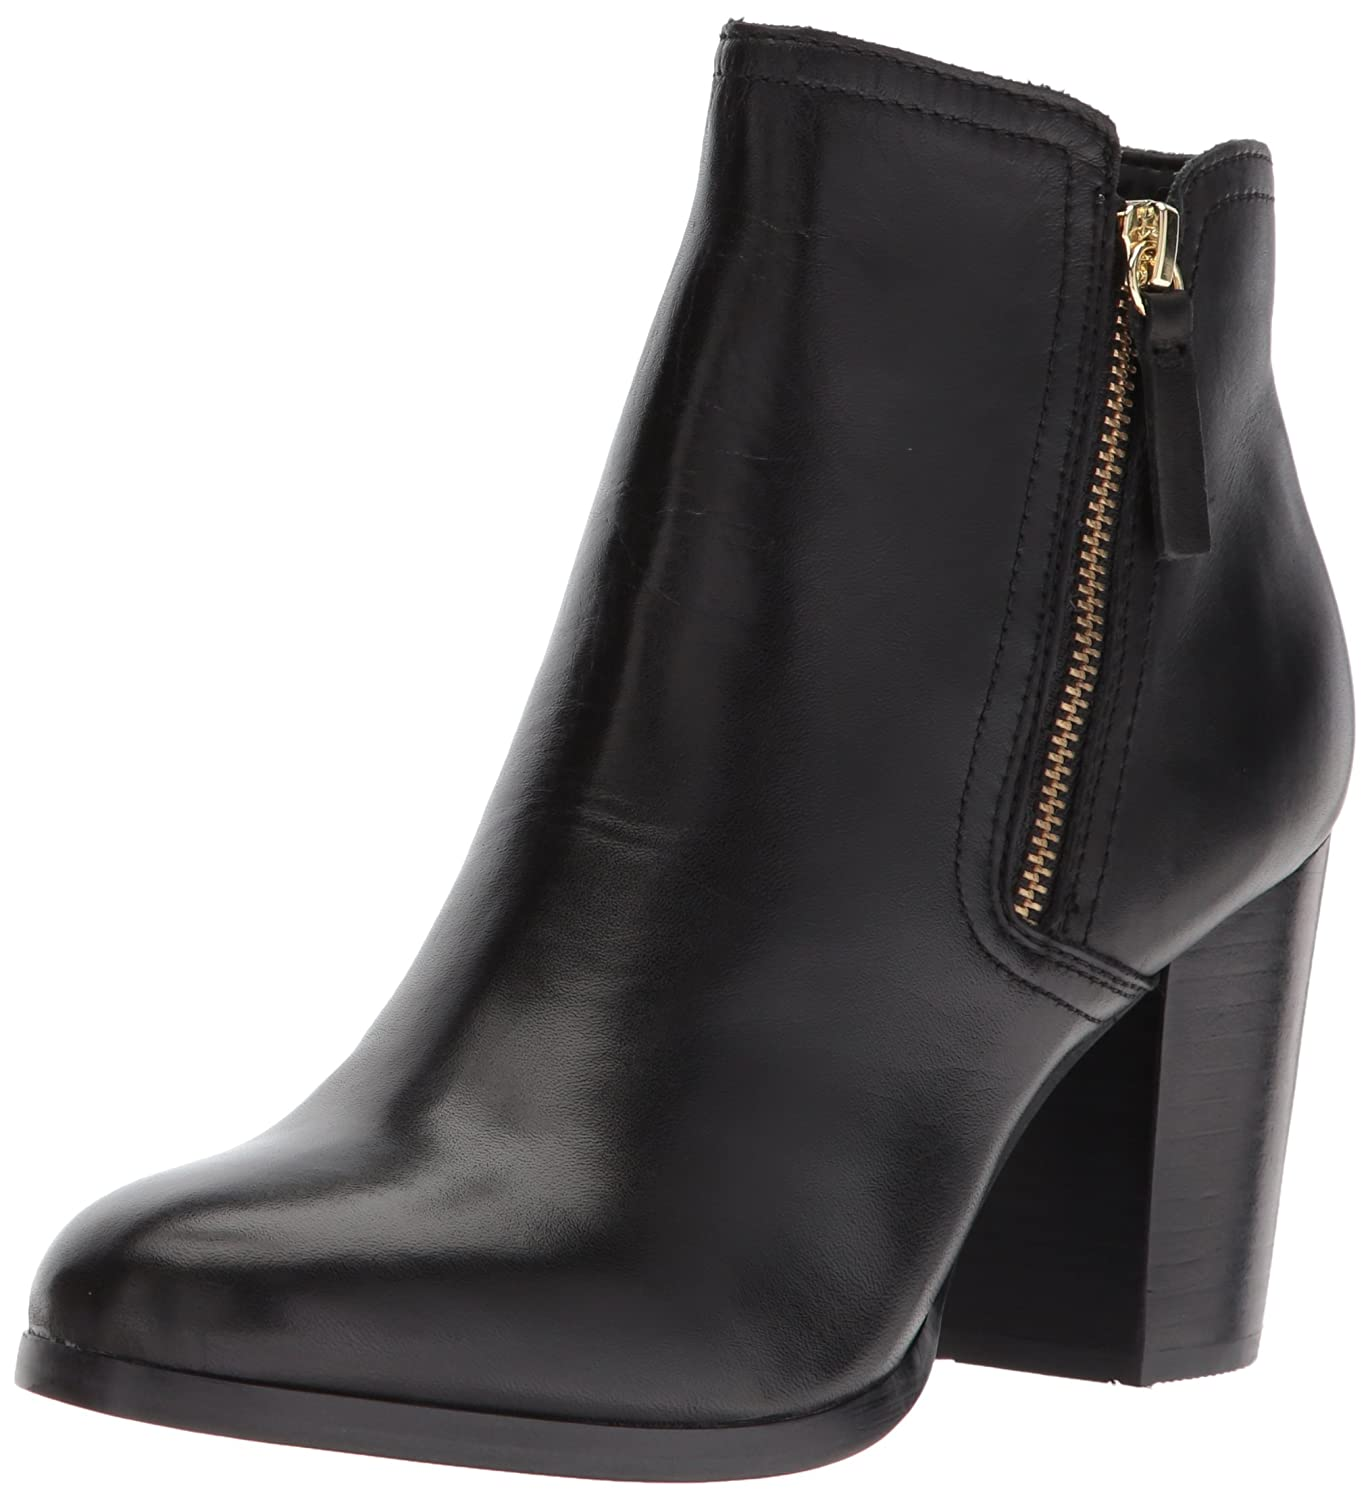 ALDO Women's Emely Ankle Bootie B071RPWMVV 8.5 B(M) US|Black Leather